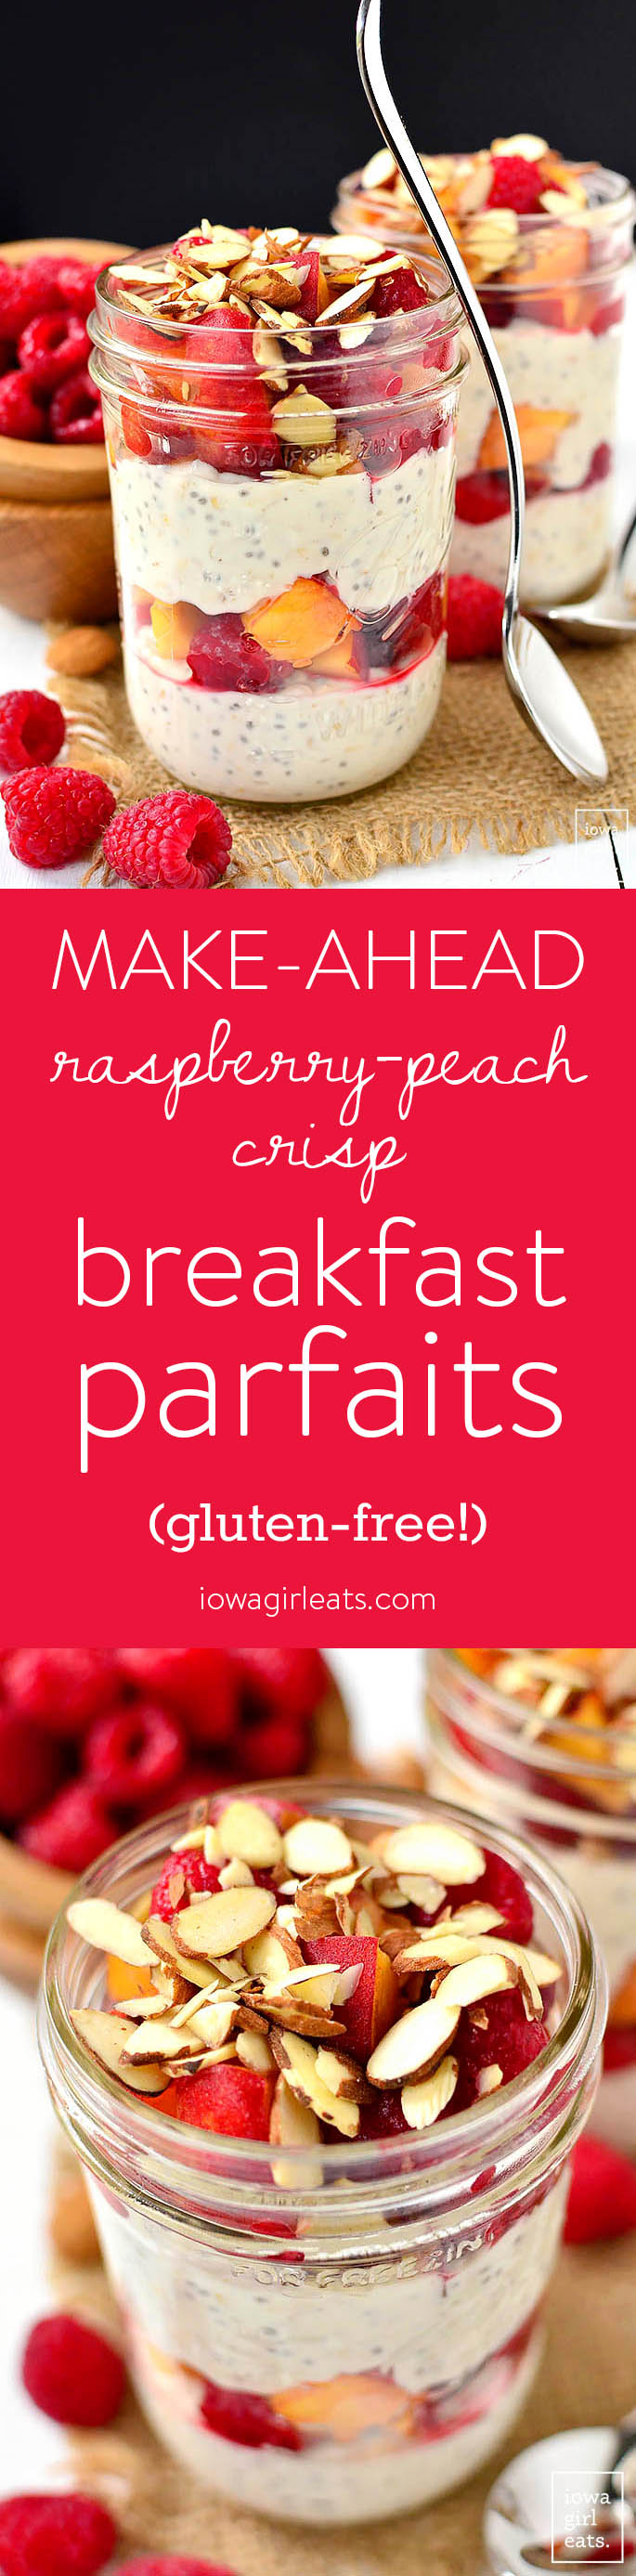 Make-Ahead Raspberry-Peach Crisp Breakfast Parfaits are gluten-free, fresh and filling. Assemble at night then grab and go for a quick and healthy breakfast in the morning. | iowagirleats.com